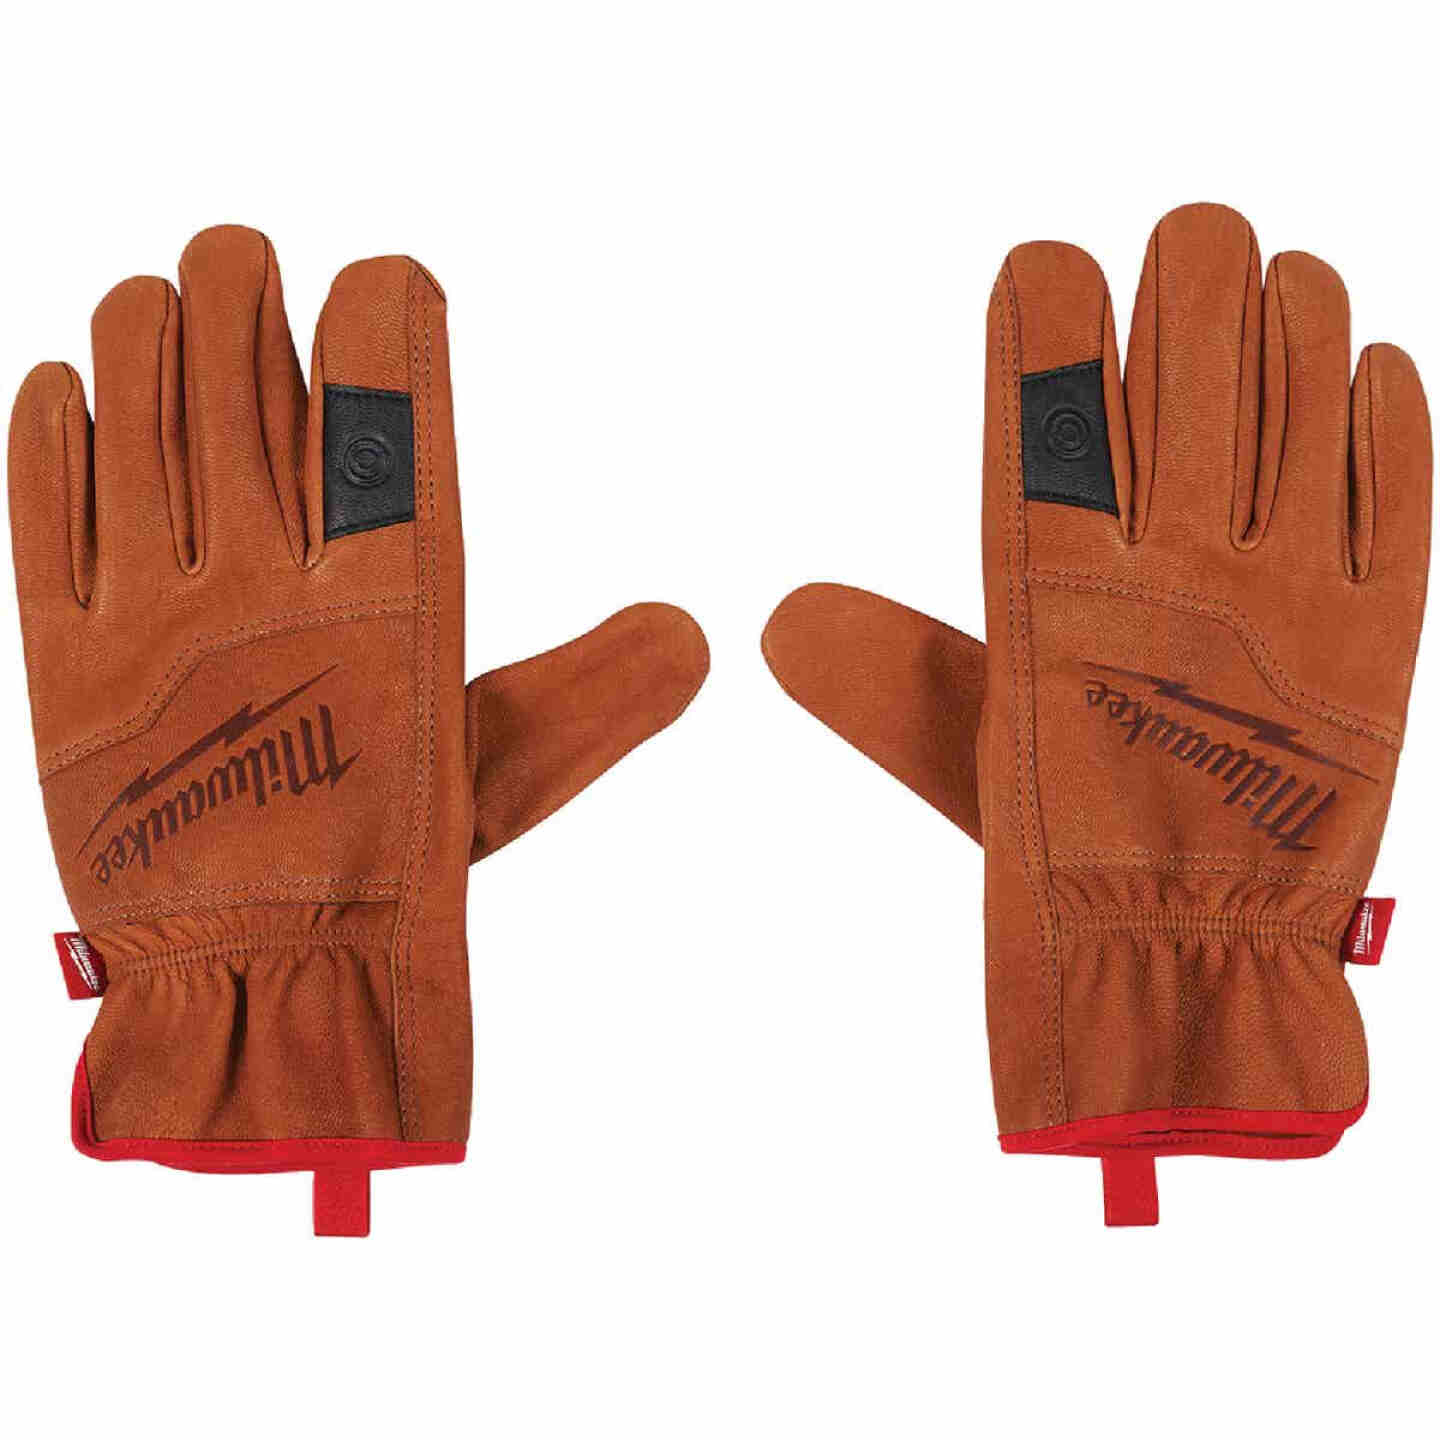 Milwaukee Men's XL Goatskin Leather Work Gloves Image 2